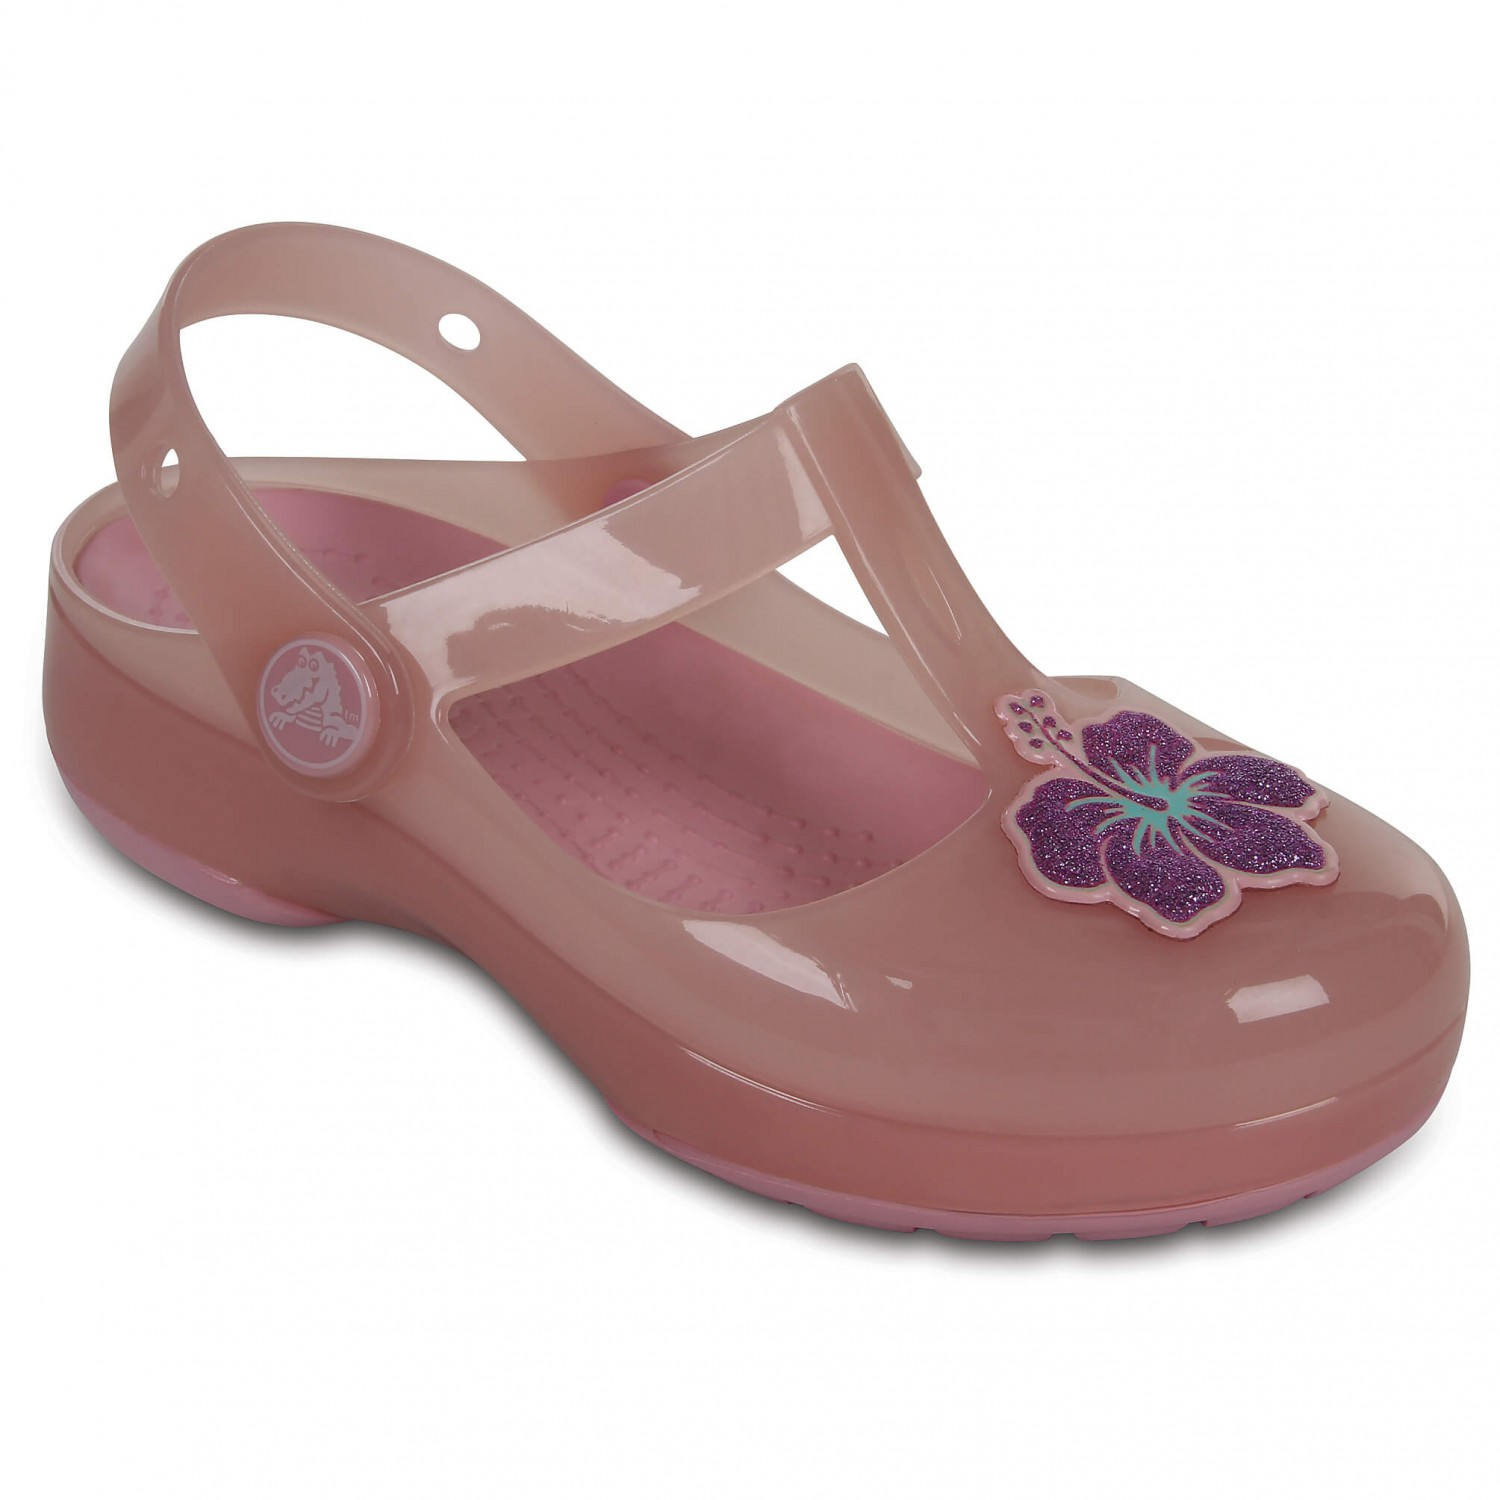 77e09a8f0b52f2 Crocs - Kid s Crocs Isabella Clog PS - Outdoor sandals